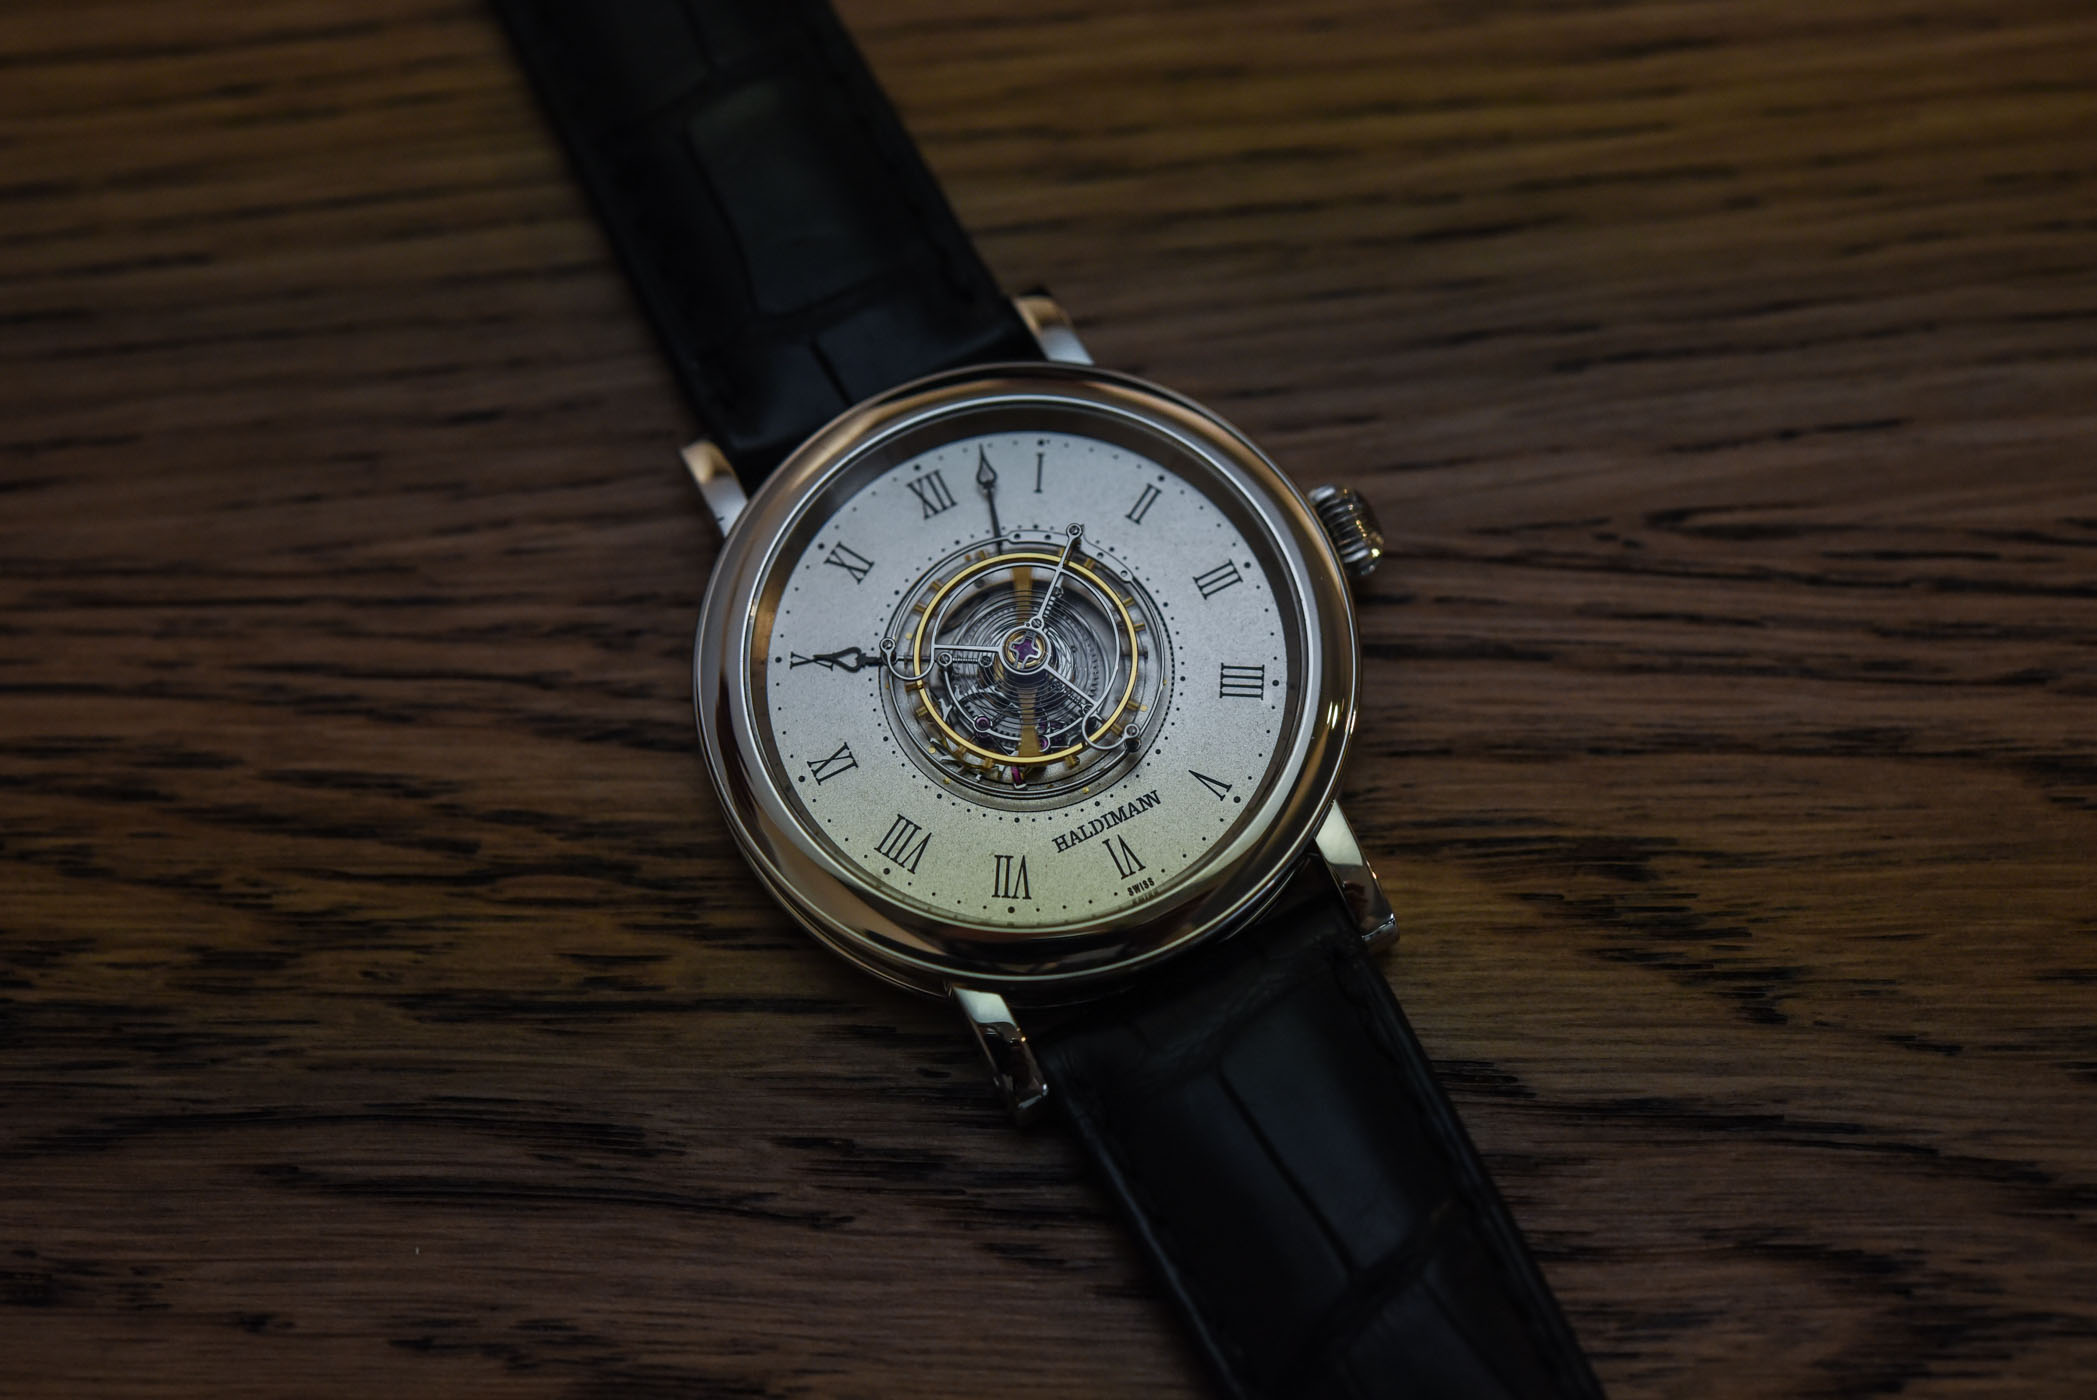 Haldiman H1 Flying Central Tourbillon